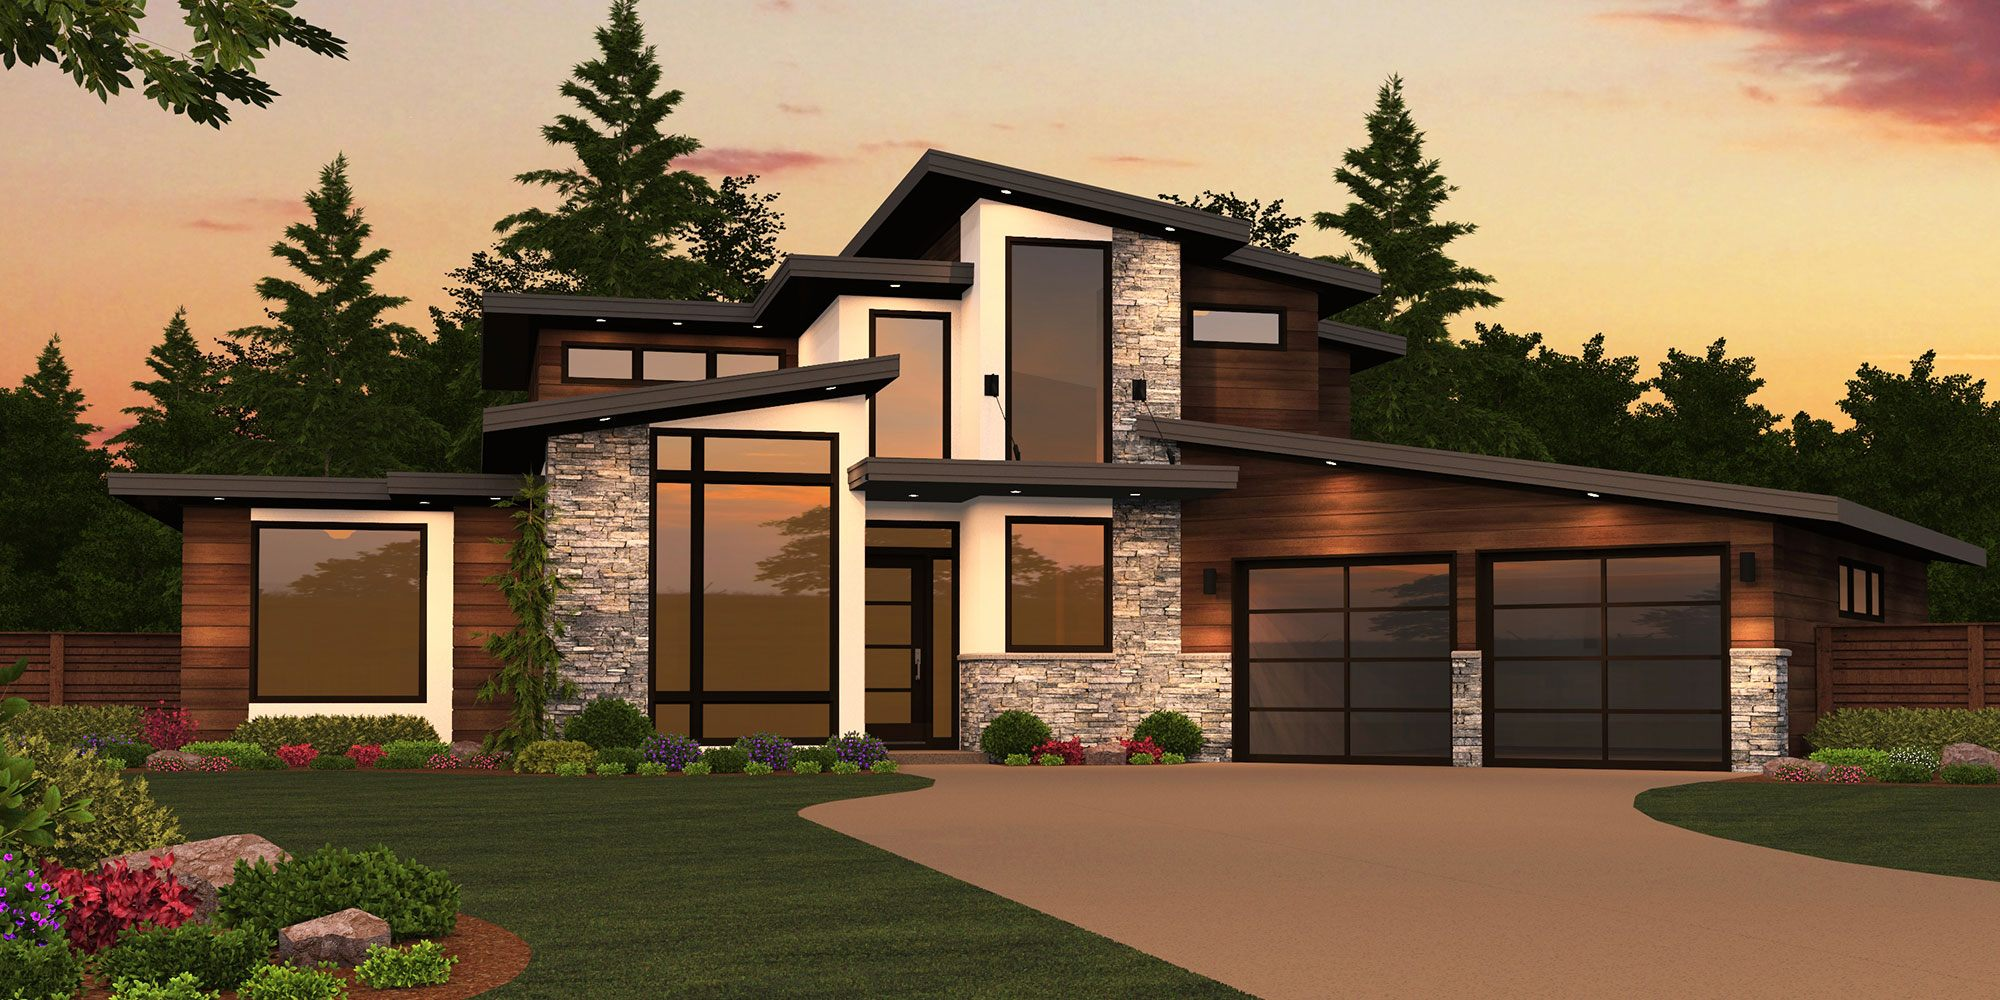 Sting x 16a house plan modern house plans for Contemporary home plans free